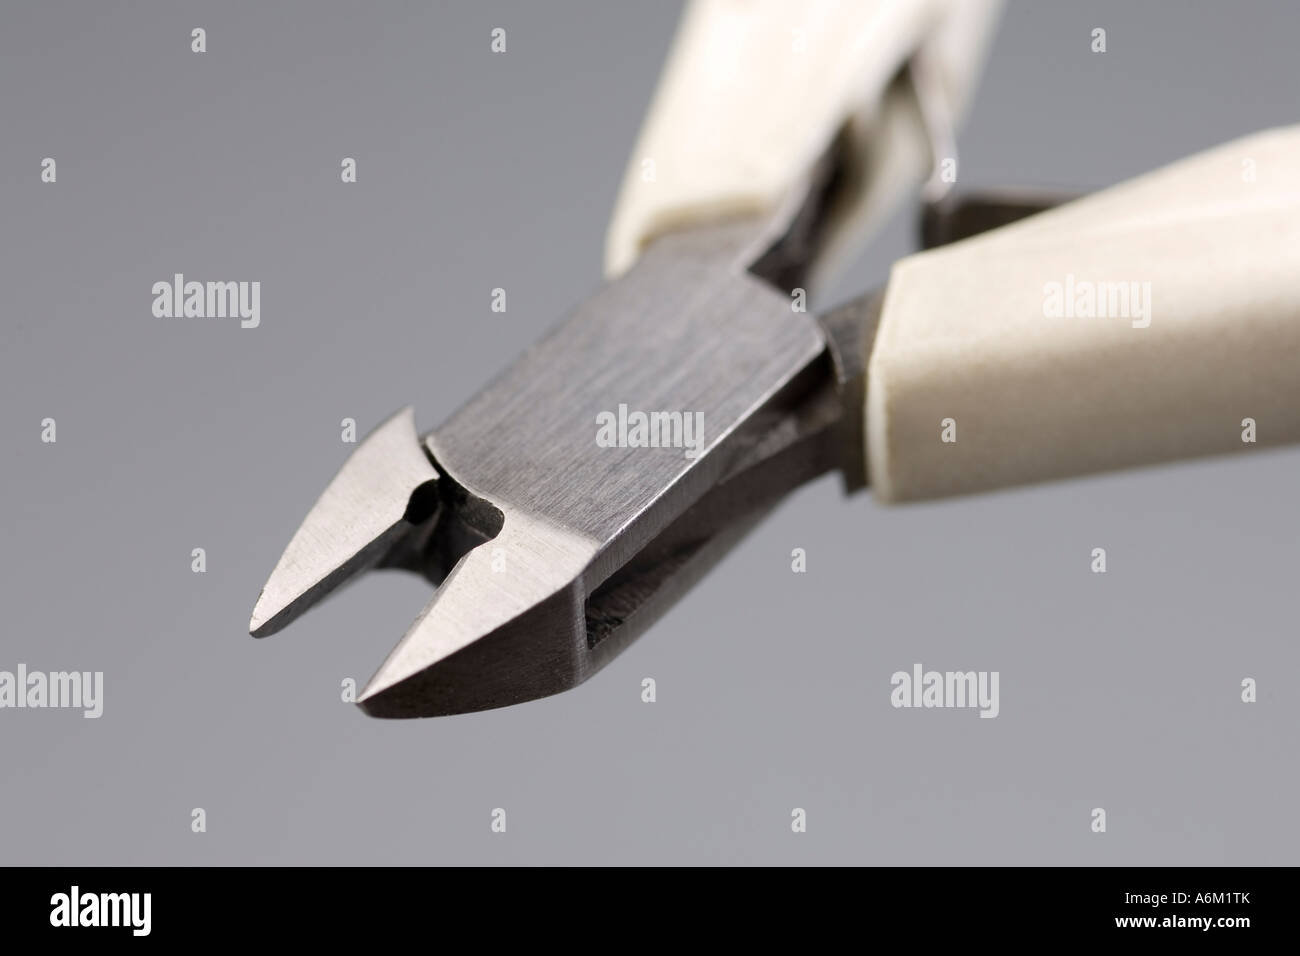 Wire Cutters Stock Photos & Wire Cutters Stock Images - Alamy